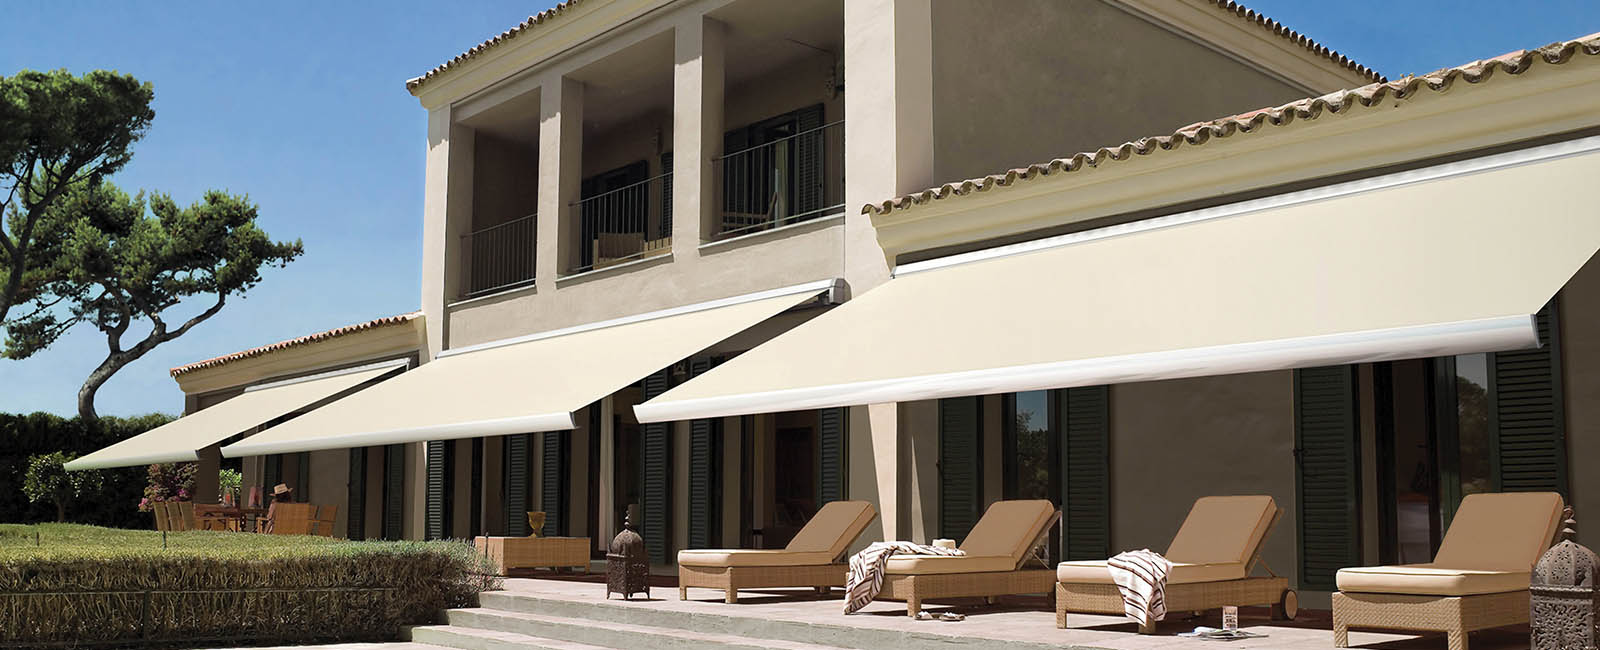 Decoshed Is Your Friendly Guard Startling Awnings Fabricator